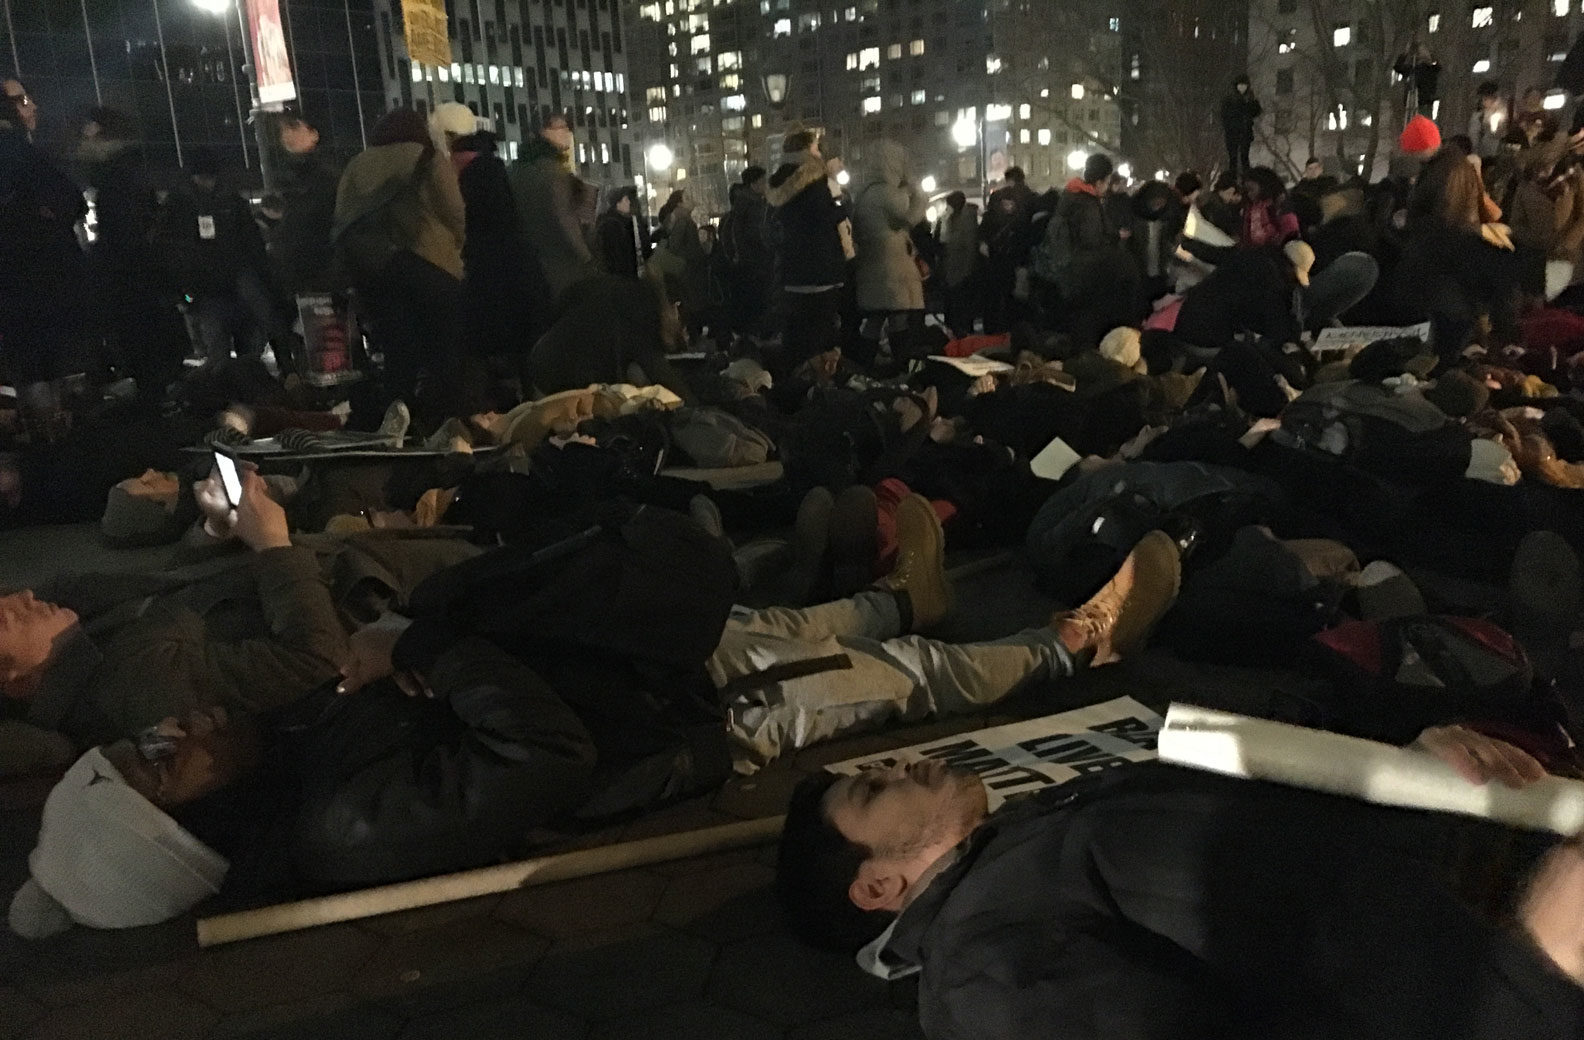 """Protesters participating in a """"die-in"""" during the action on Thursday night, Foley Square, Manhattan, February 2, 2017"""